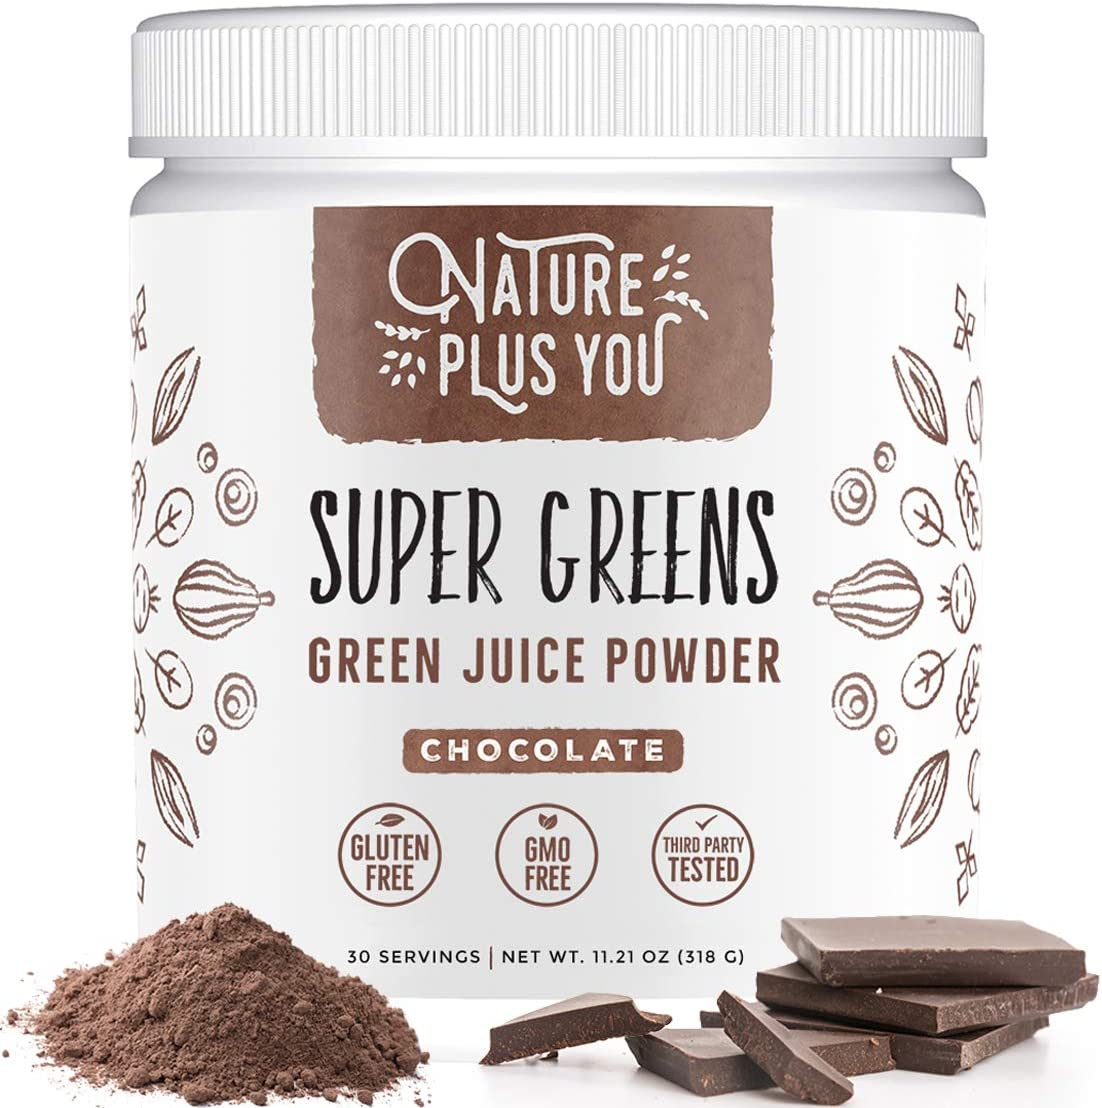 Chocolate Super Greens Organic Blend: Includes Spirulina, Alfalfa, Spinach, Acai, Probiotics and Digestive Enzymes, No Artificial Sweeteners, 30 Servings by Nature Plus You